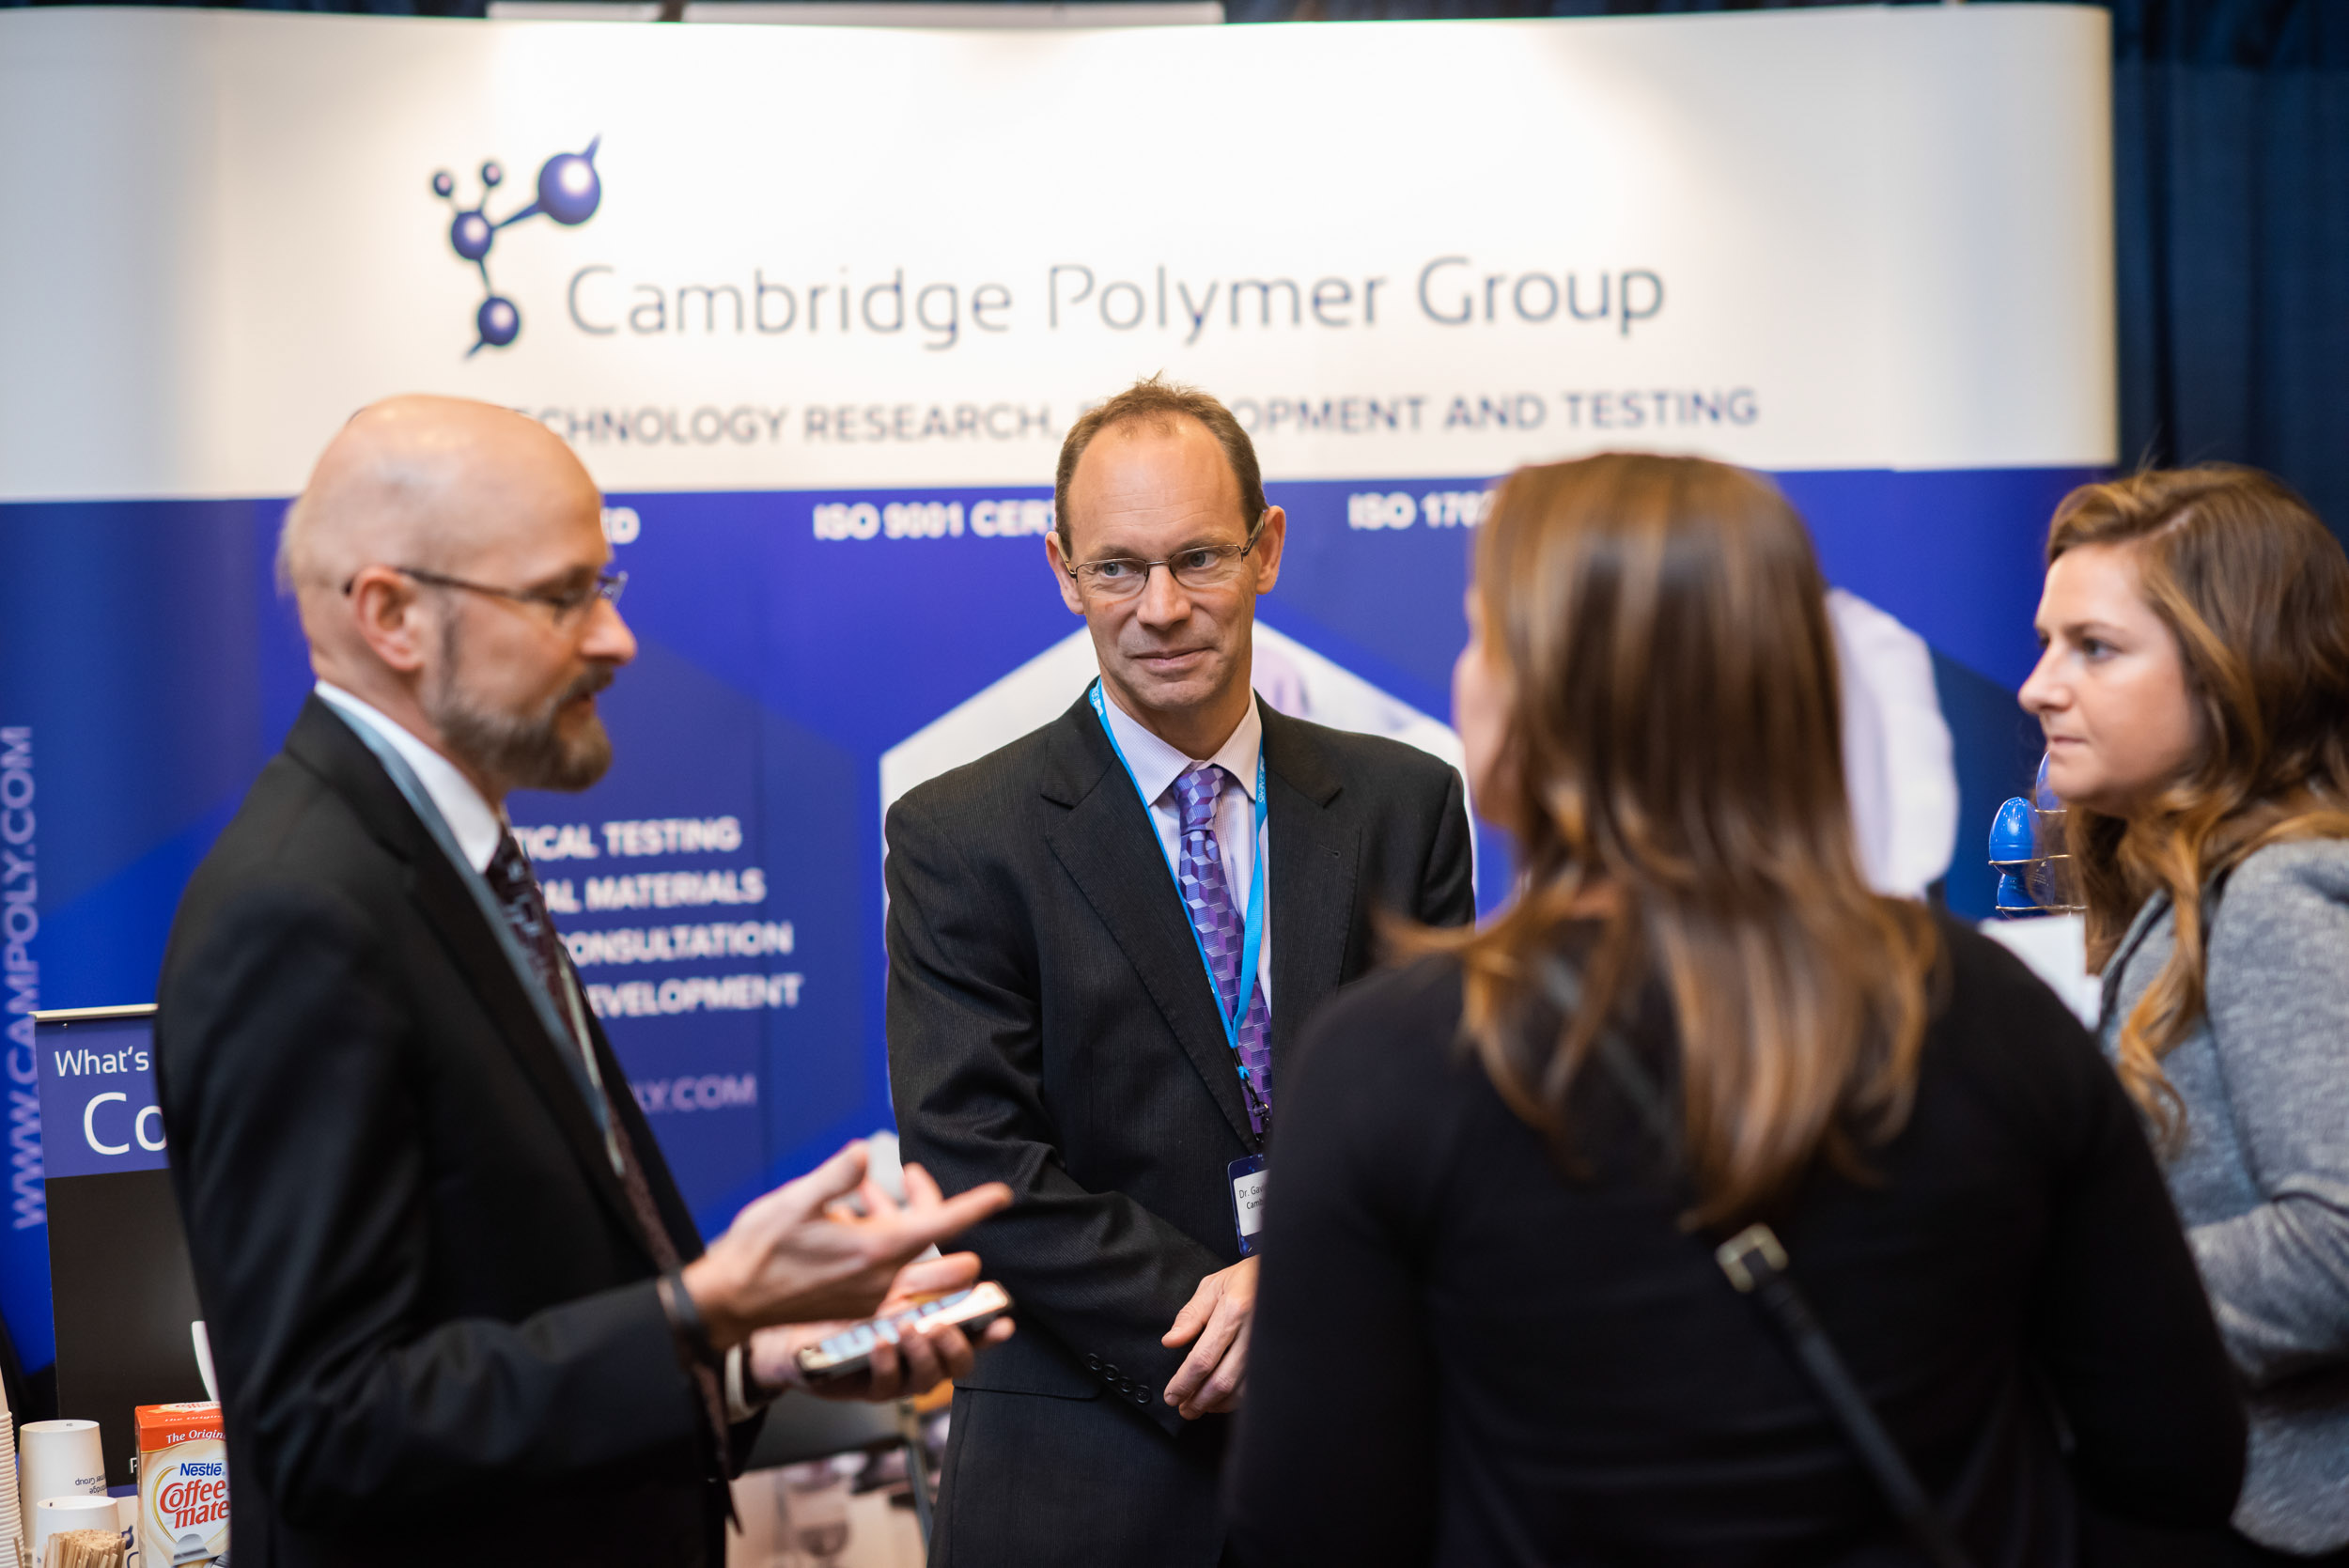 181024 - American Medical Device Summit - mark campbell photography-289_Resized_Resized.jpg